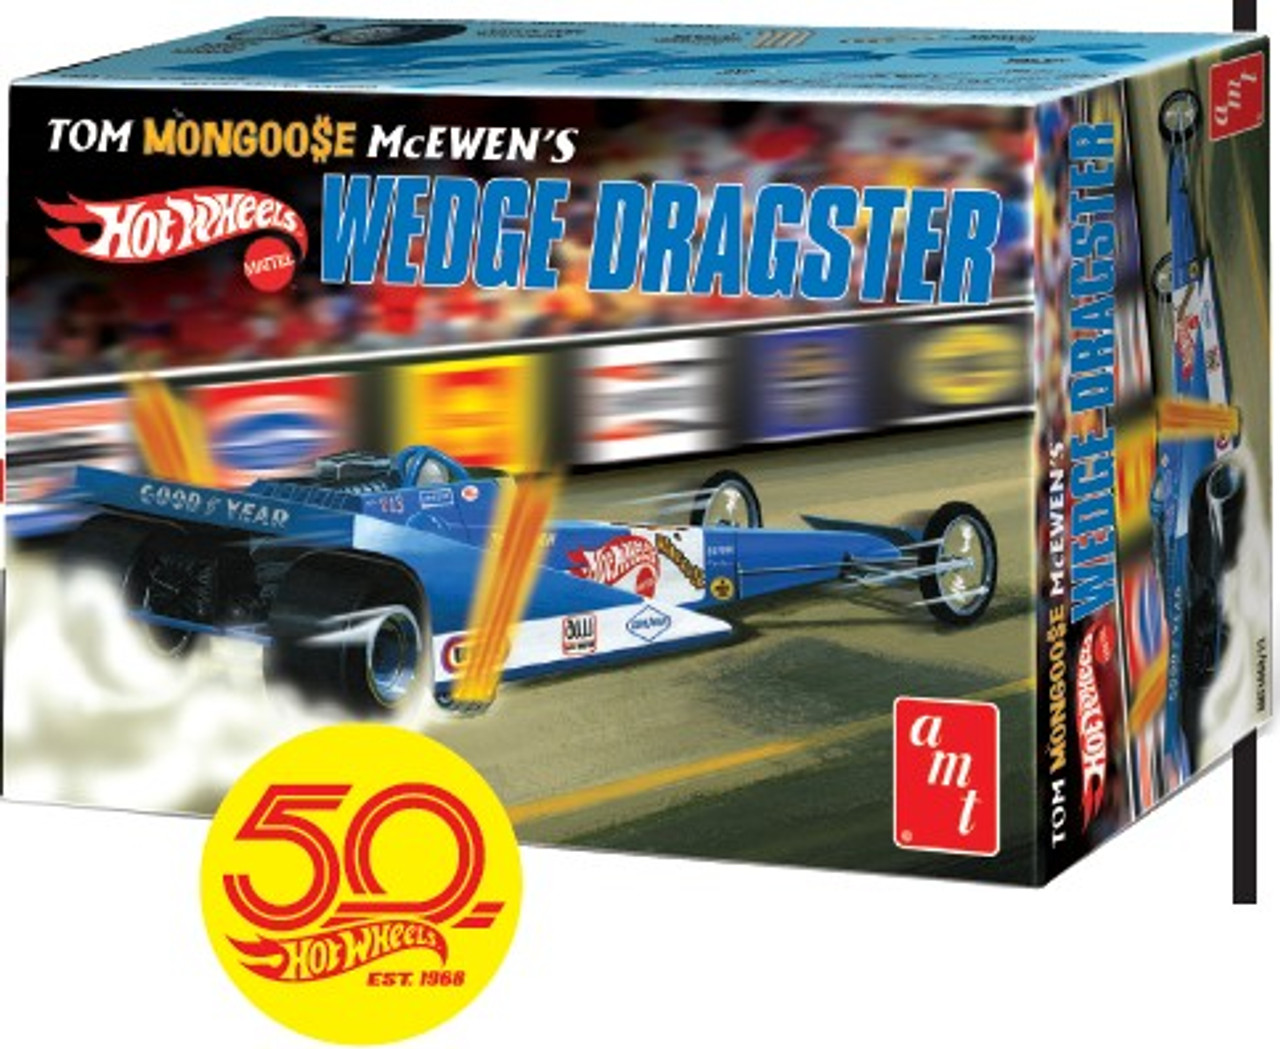 AMT-1069  1/25 Tom Mongoose McEwen's Wedge Dragster